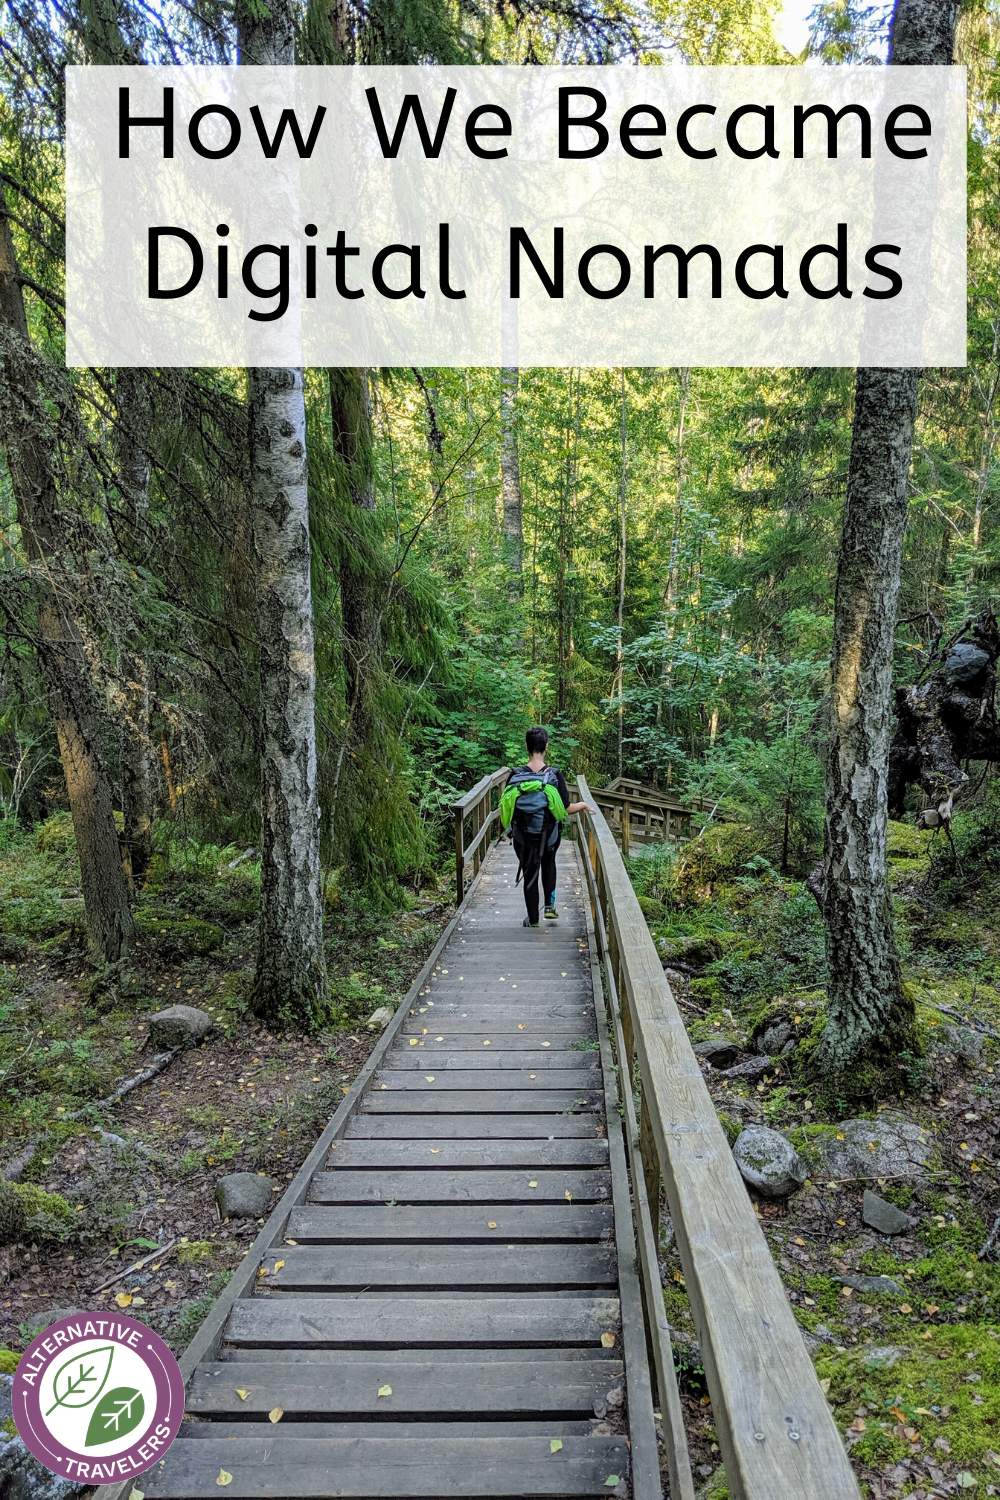 How we became digital nomads! Click to hear our digital nomad story, our most transformative travel experiences, why we left New York City, and much more on The Alternative Travelers podcast!